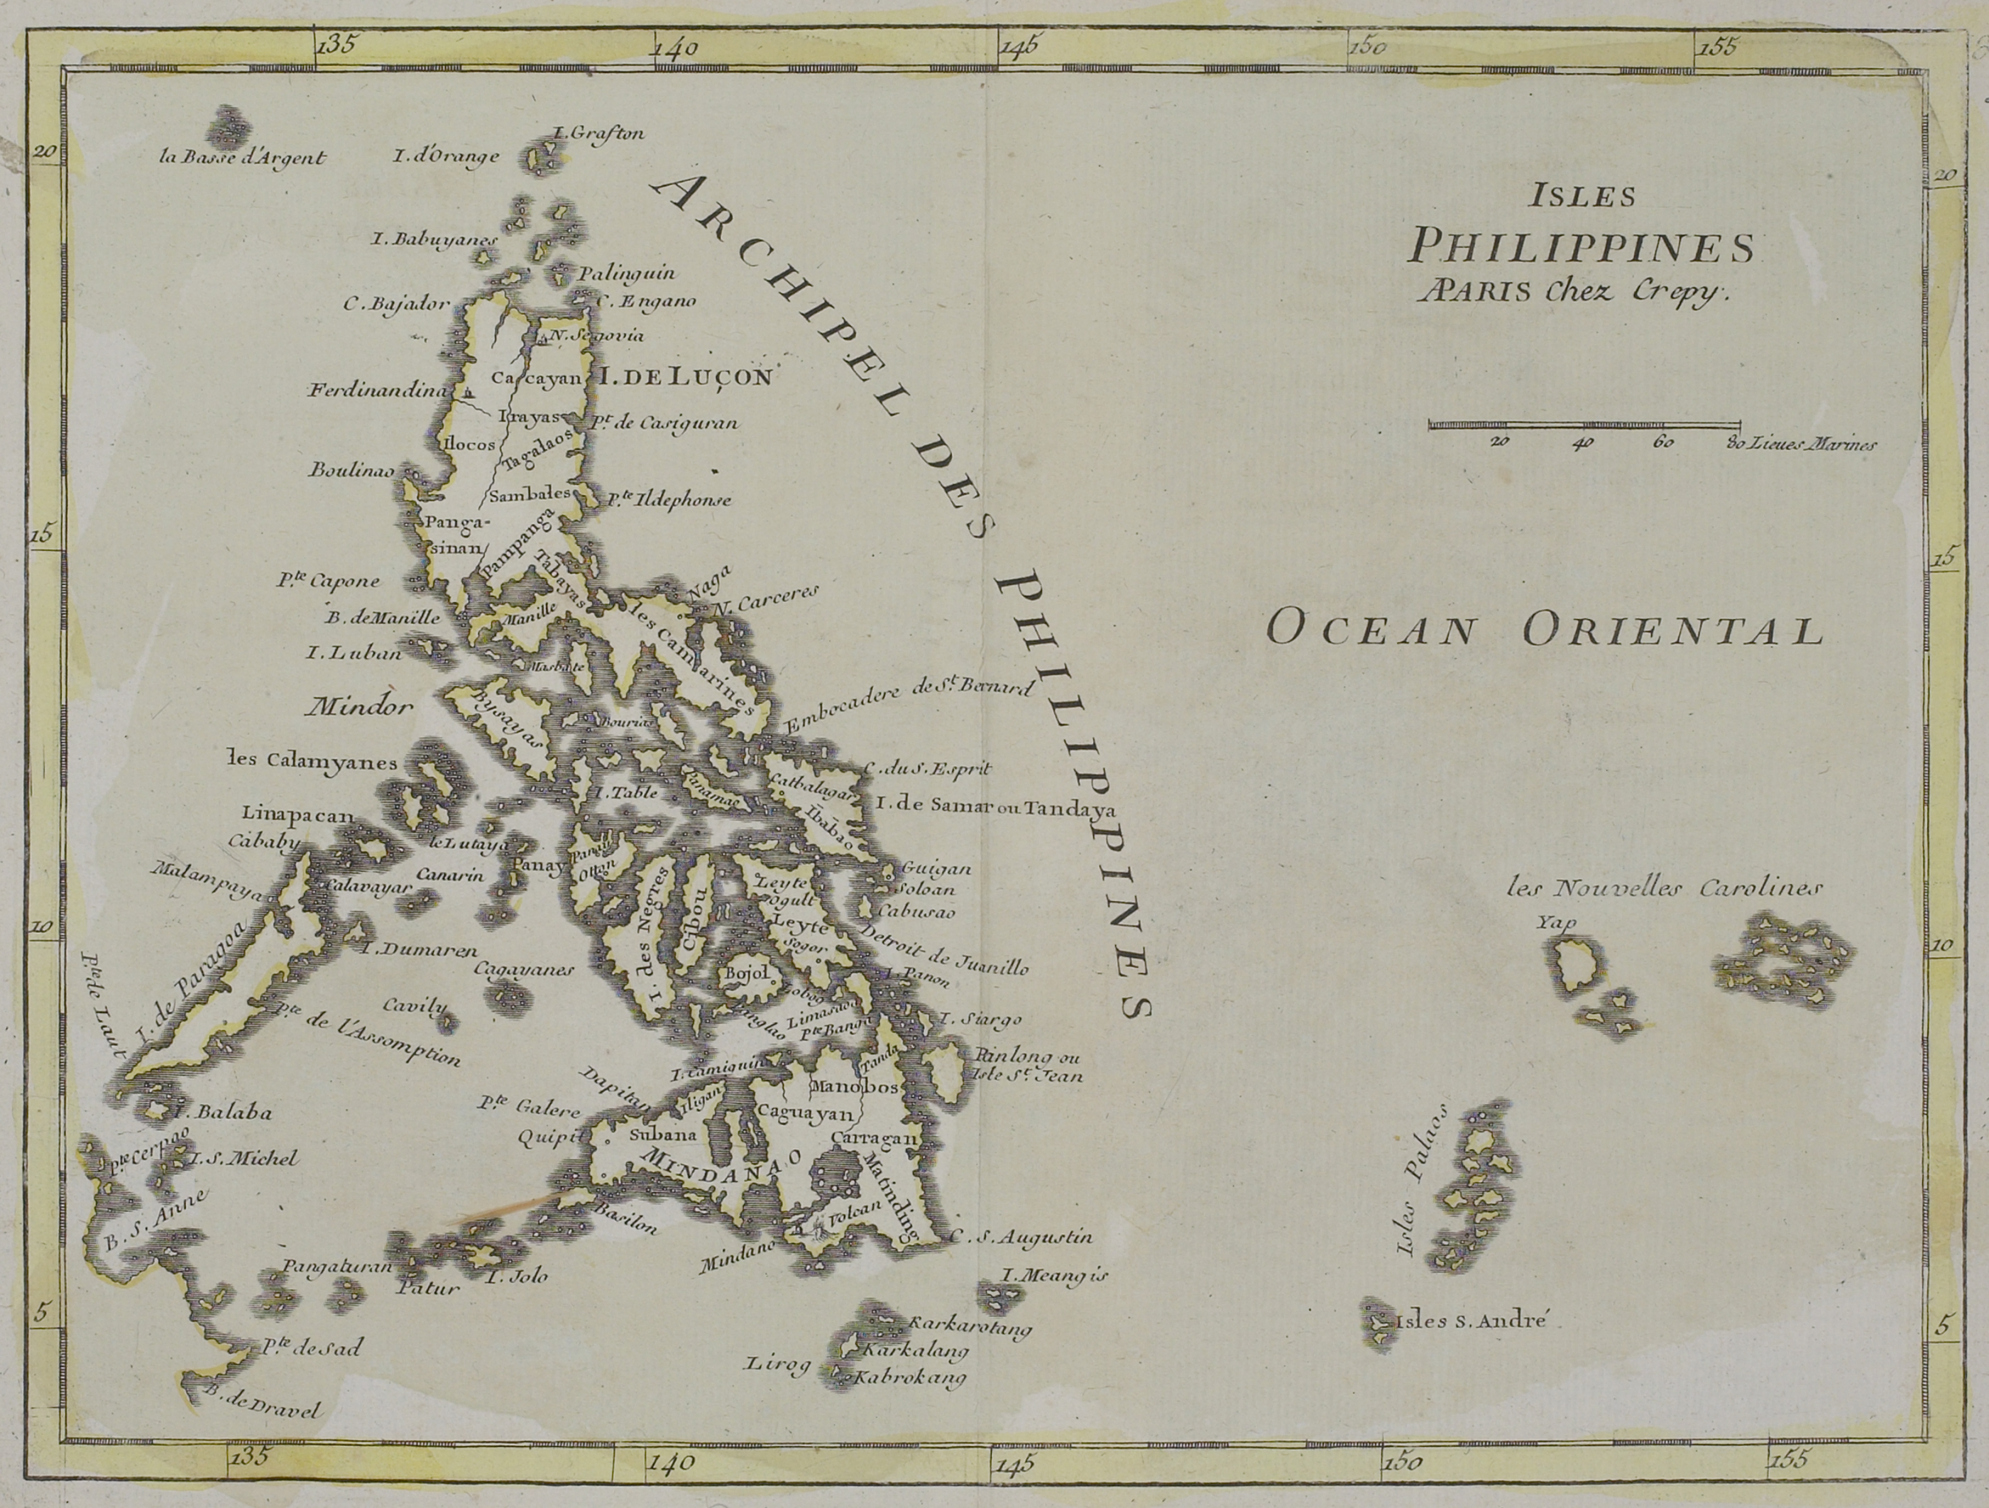 Where Will a Philippine Passport Allow You to Go? | USA Today